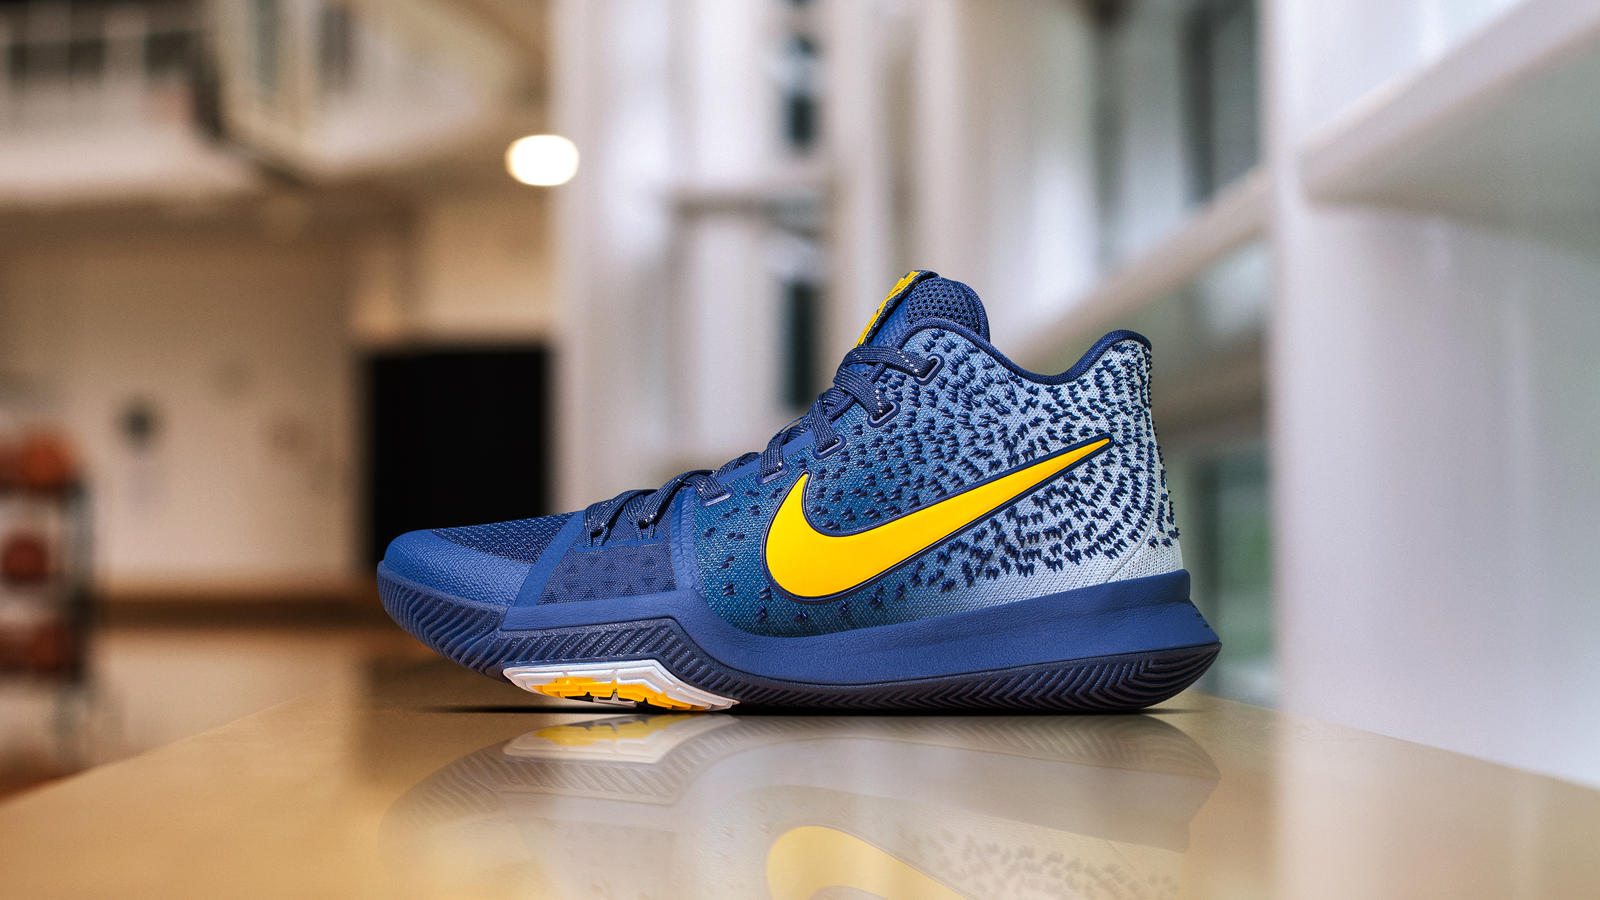 new products 2c907 74452 KYRIE 3 PE - Nike News